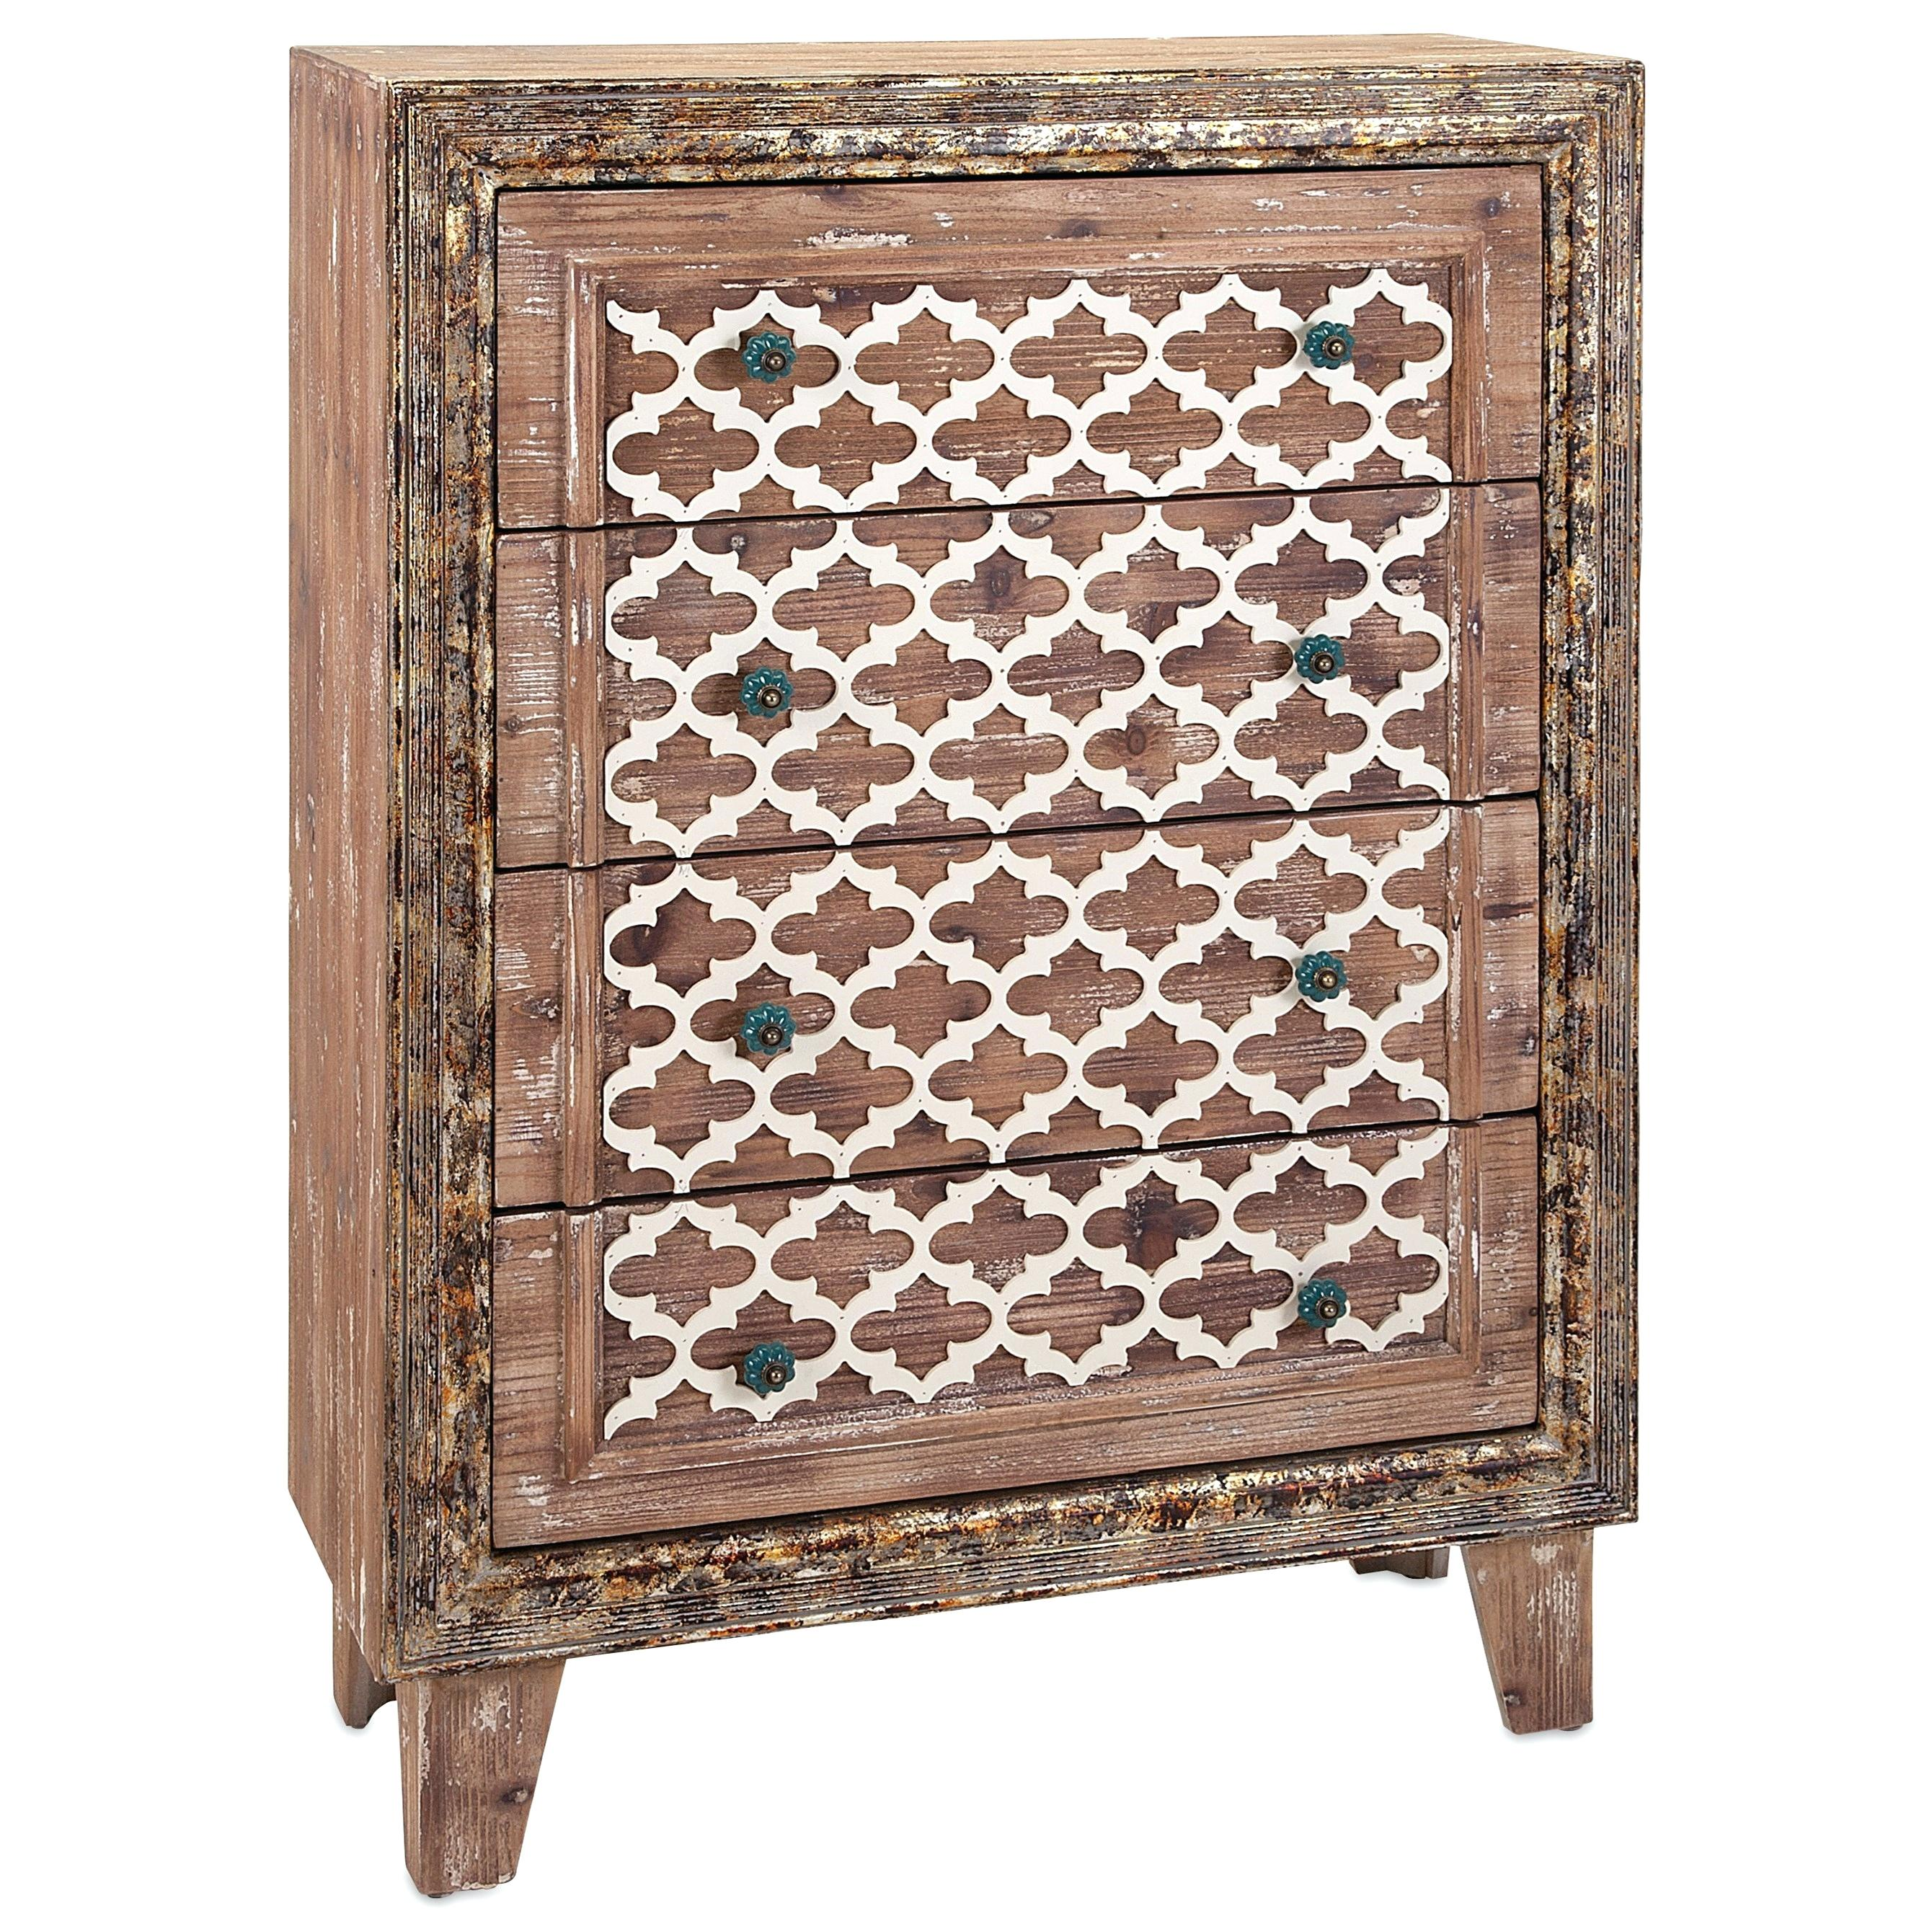 accent tables with drawers full size tall table worldwide home and cabinets wood chest end storage antique carved small short side outdoor globe light wicker patio chic furniture